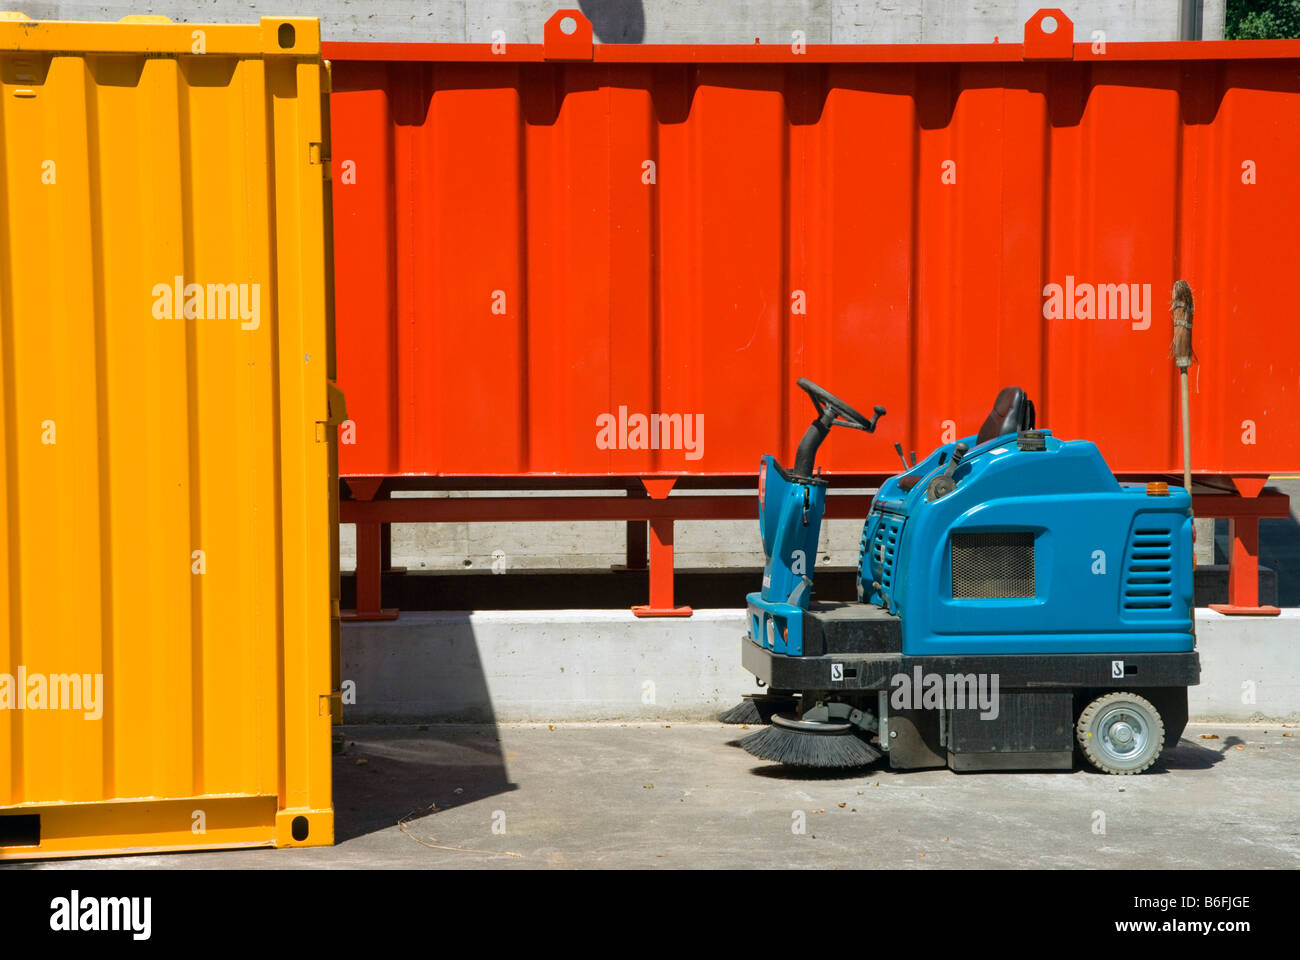 Containers and street sweeping machine in the Sondermuelldeponie or hazardous waste deposit in Koelliken, SMDK, Stock Photo